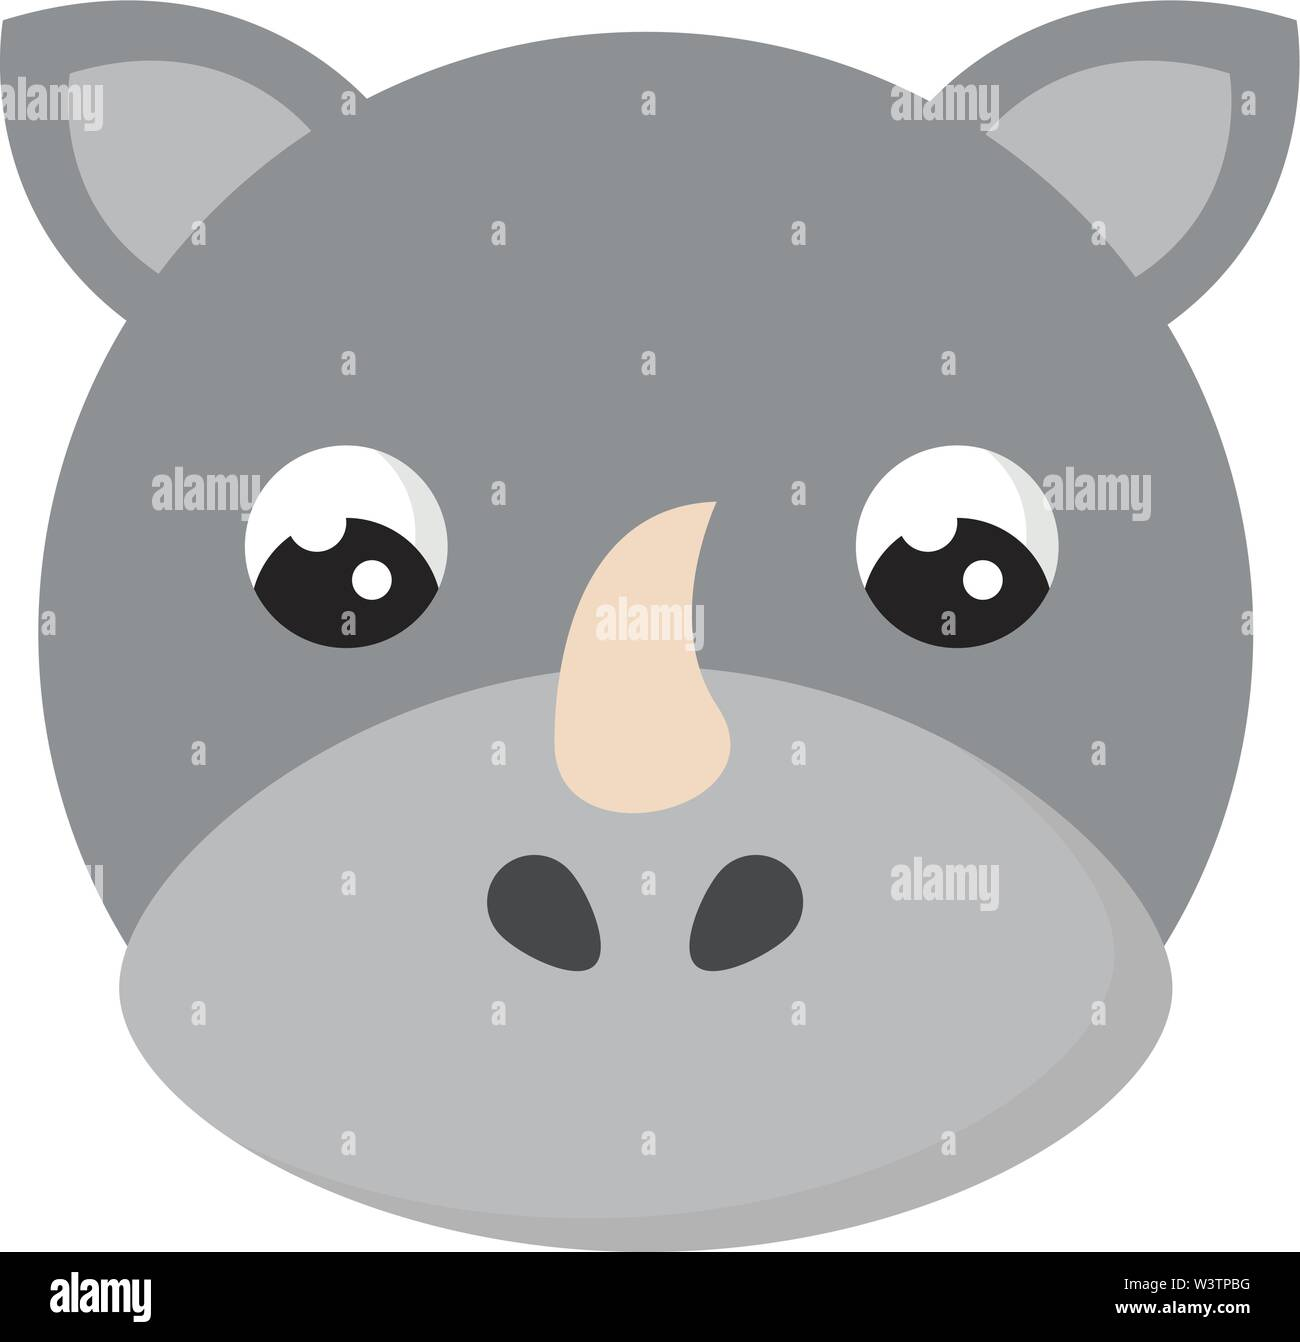 Jolie petite rhino, illustration, vecteur sur fond blanc. Photo Stock